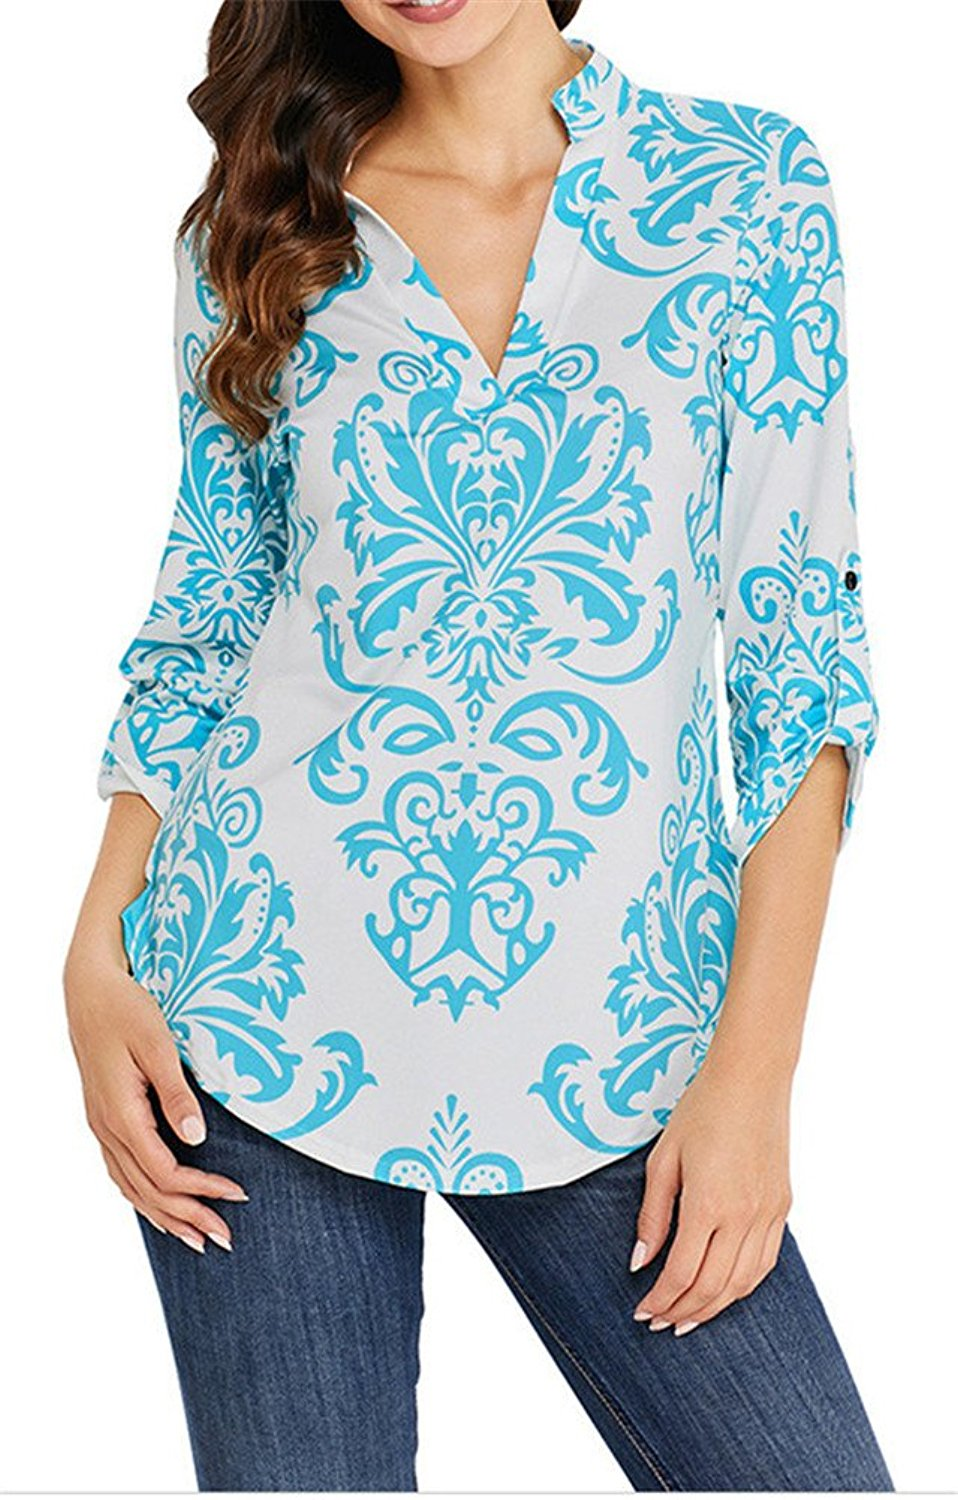 582a8be77a544 Get Quotations · Ourfashion Womens Floral Printed Tunic Shirts 3 4 Roll  Sleeve Notch Neck Tunic Top